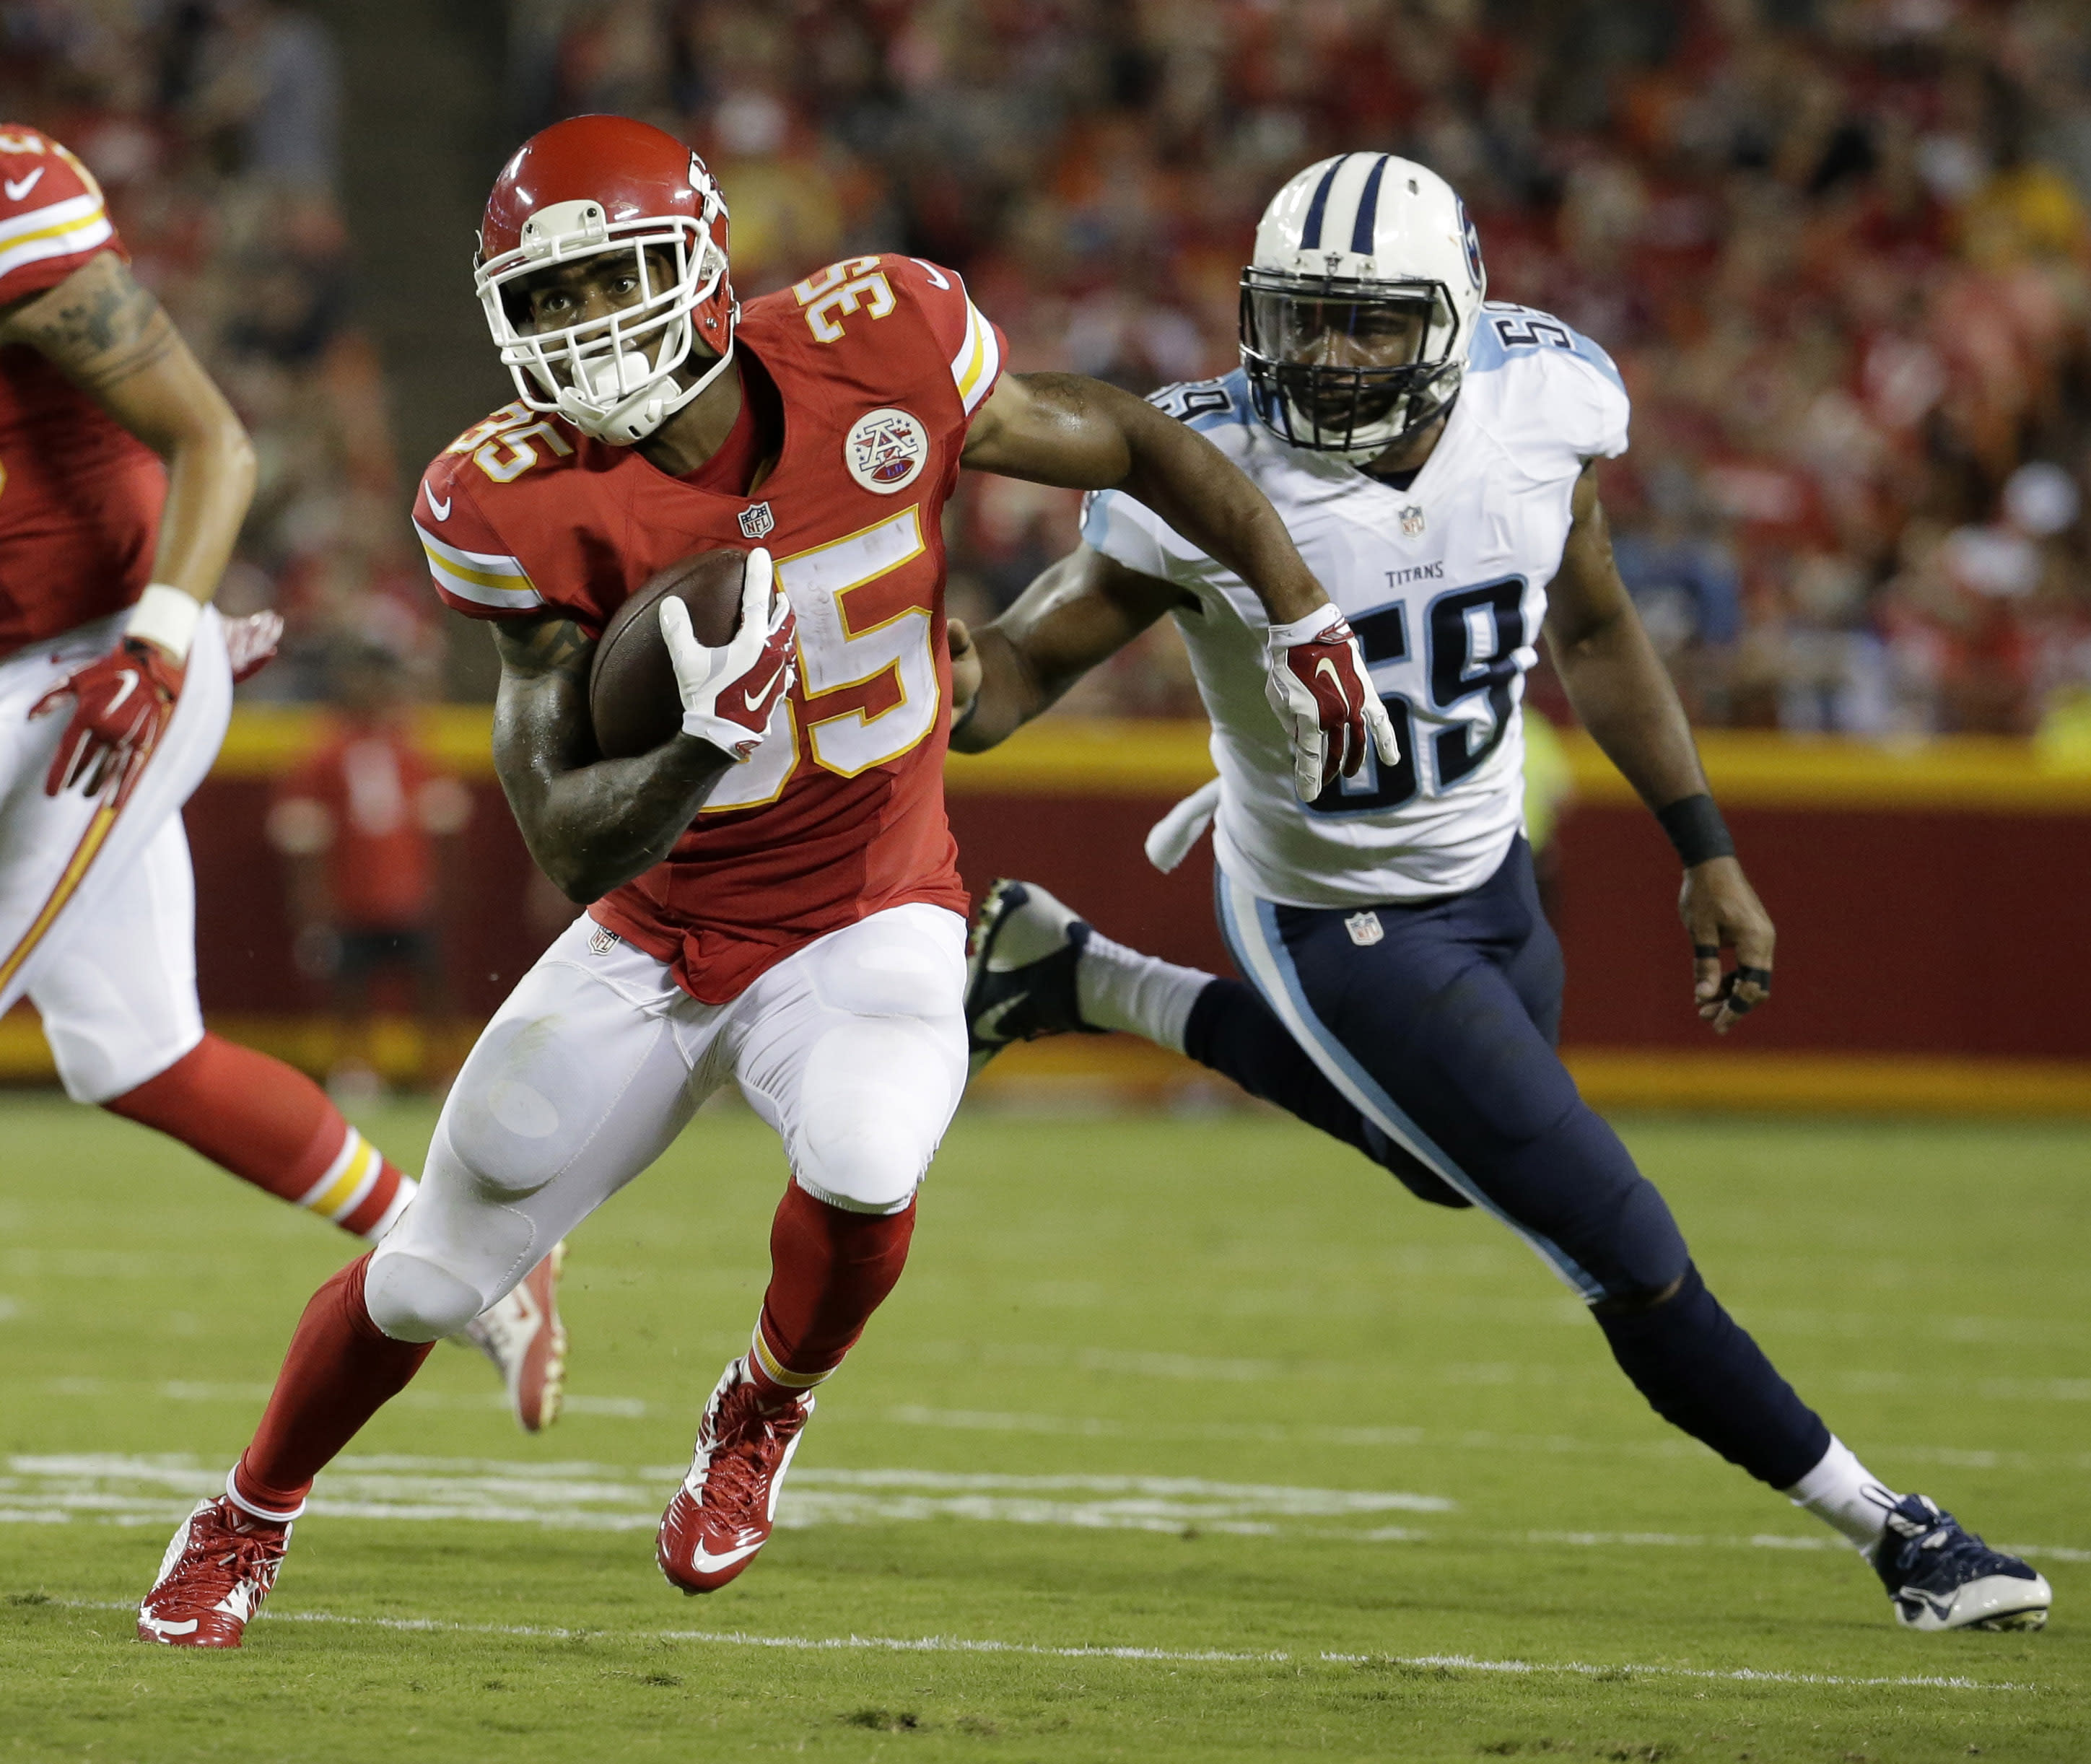 Smith sharp as Chiefs rout Titans 34-10 in preseason game